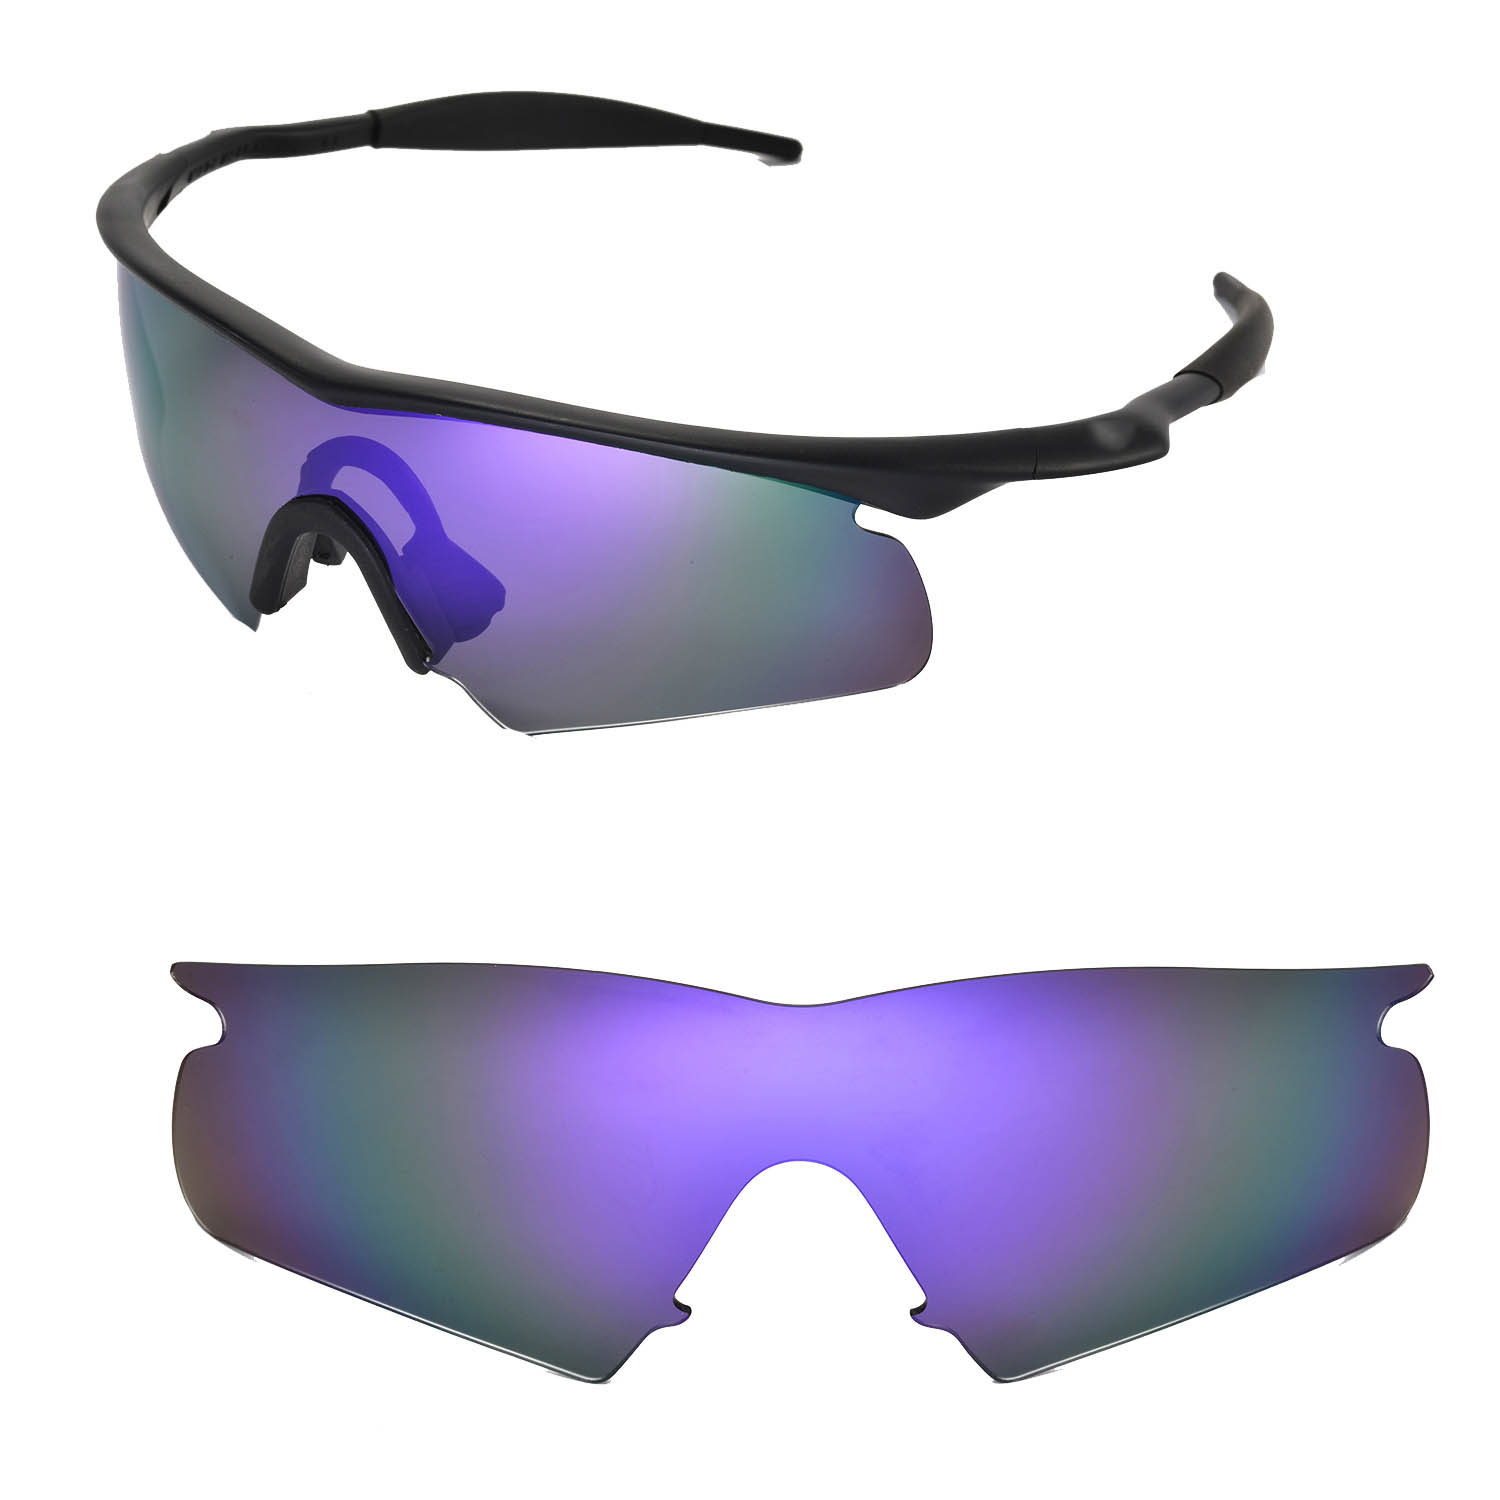 eb1db721437 Walleva Replacement Lenses For Oakley M Frame Hybrid Sunglasses-multiple  Options Auctions - Buy .